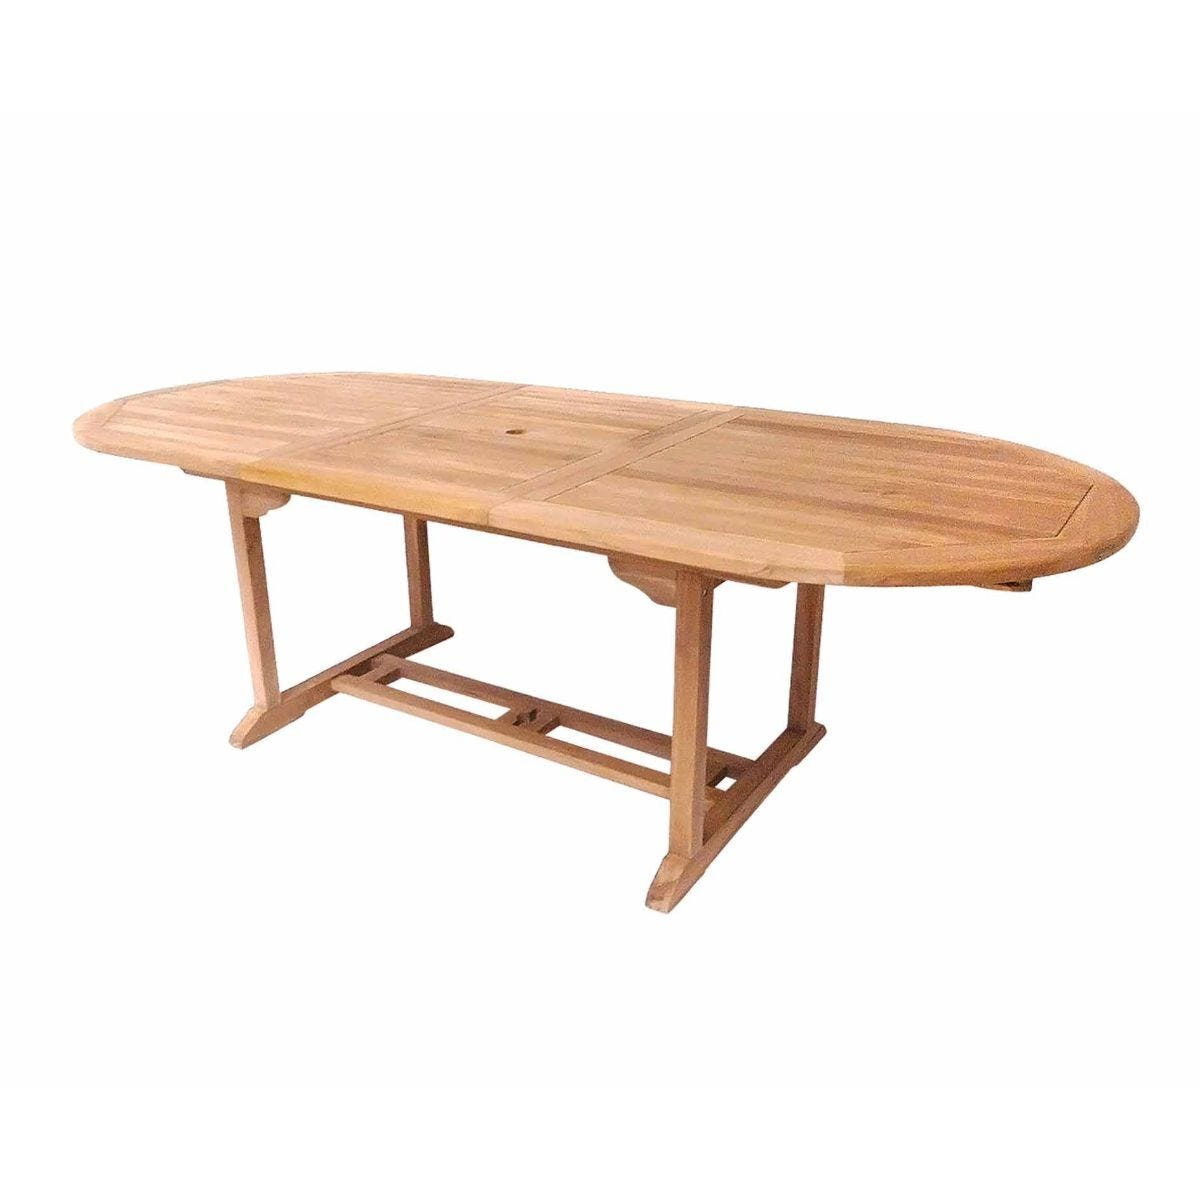 Charles Bentley Solid Wooden Teak Oval 6-8 Seater Extendable Table